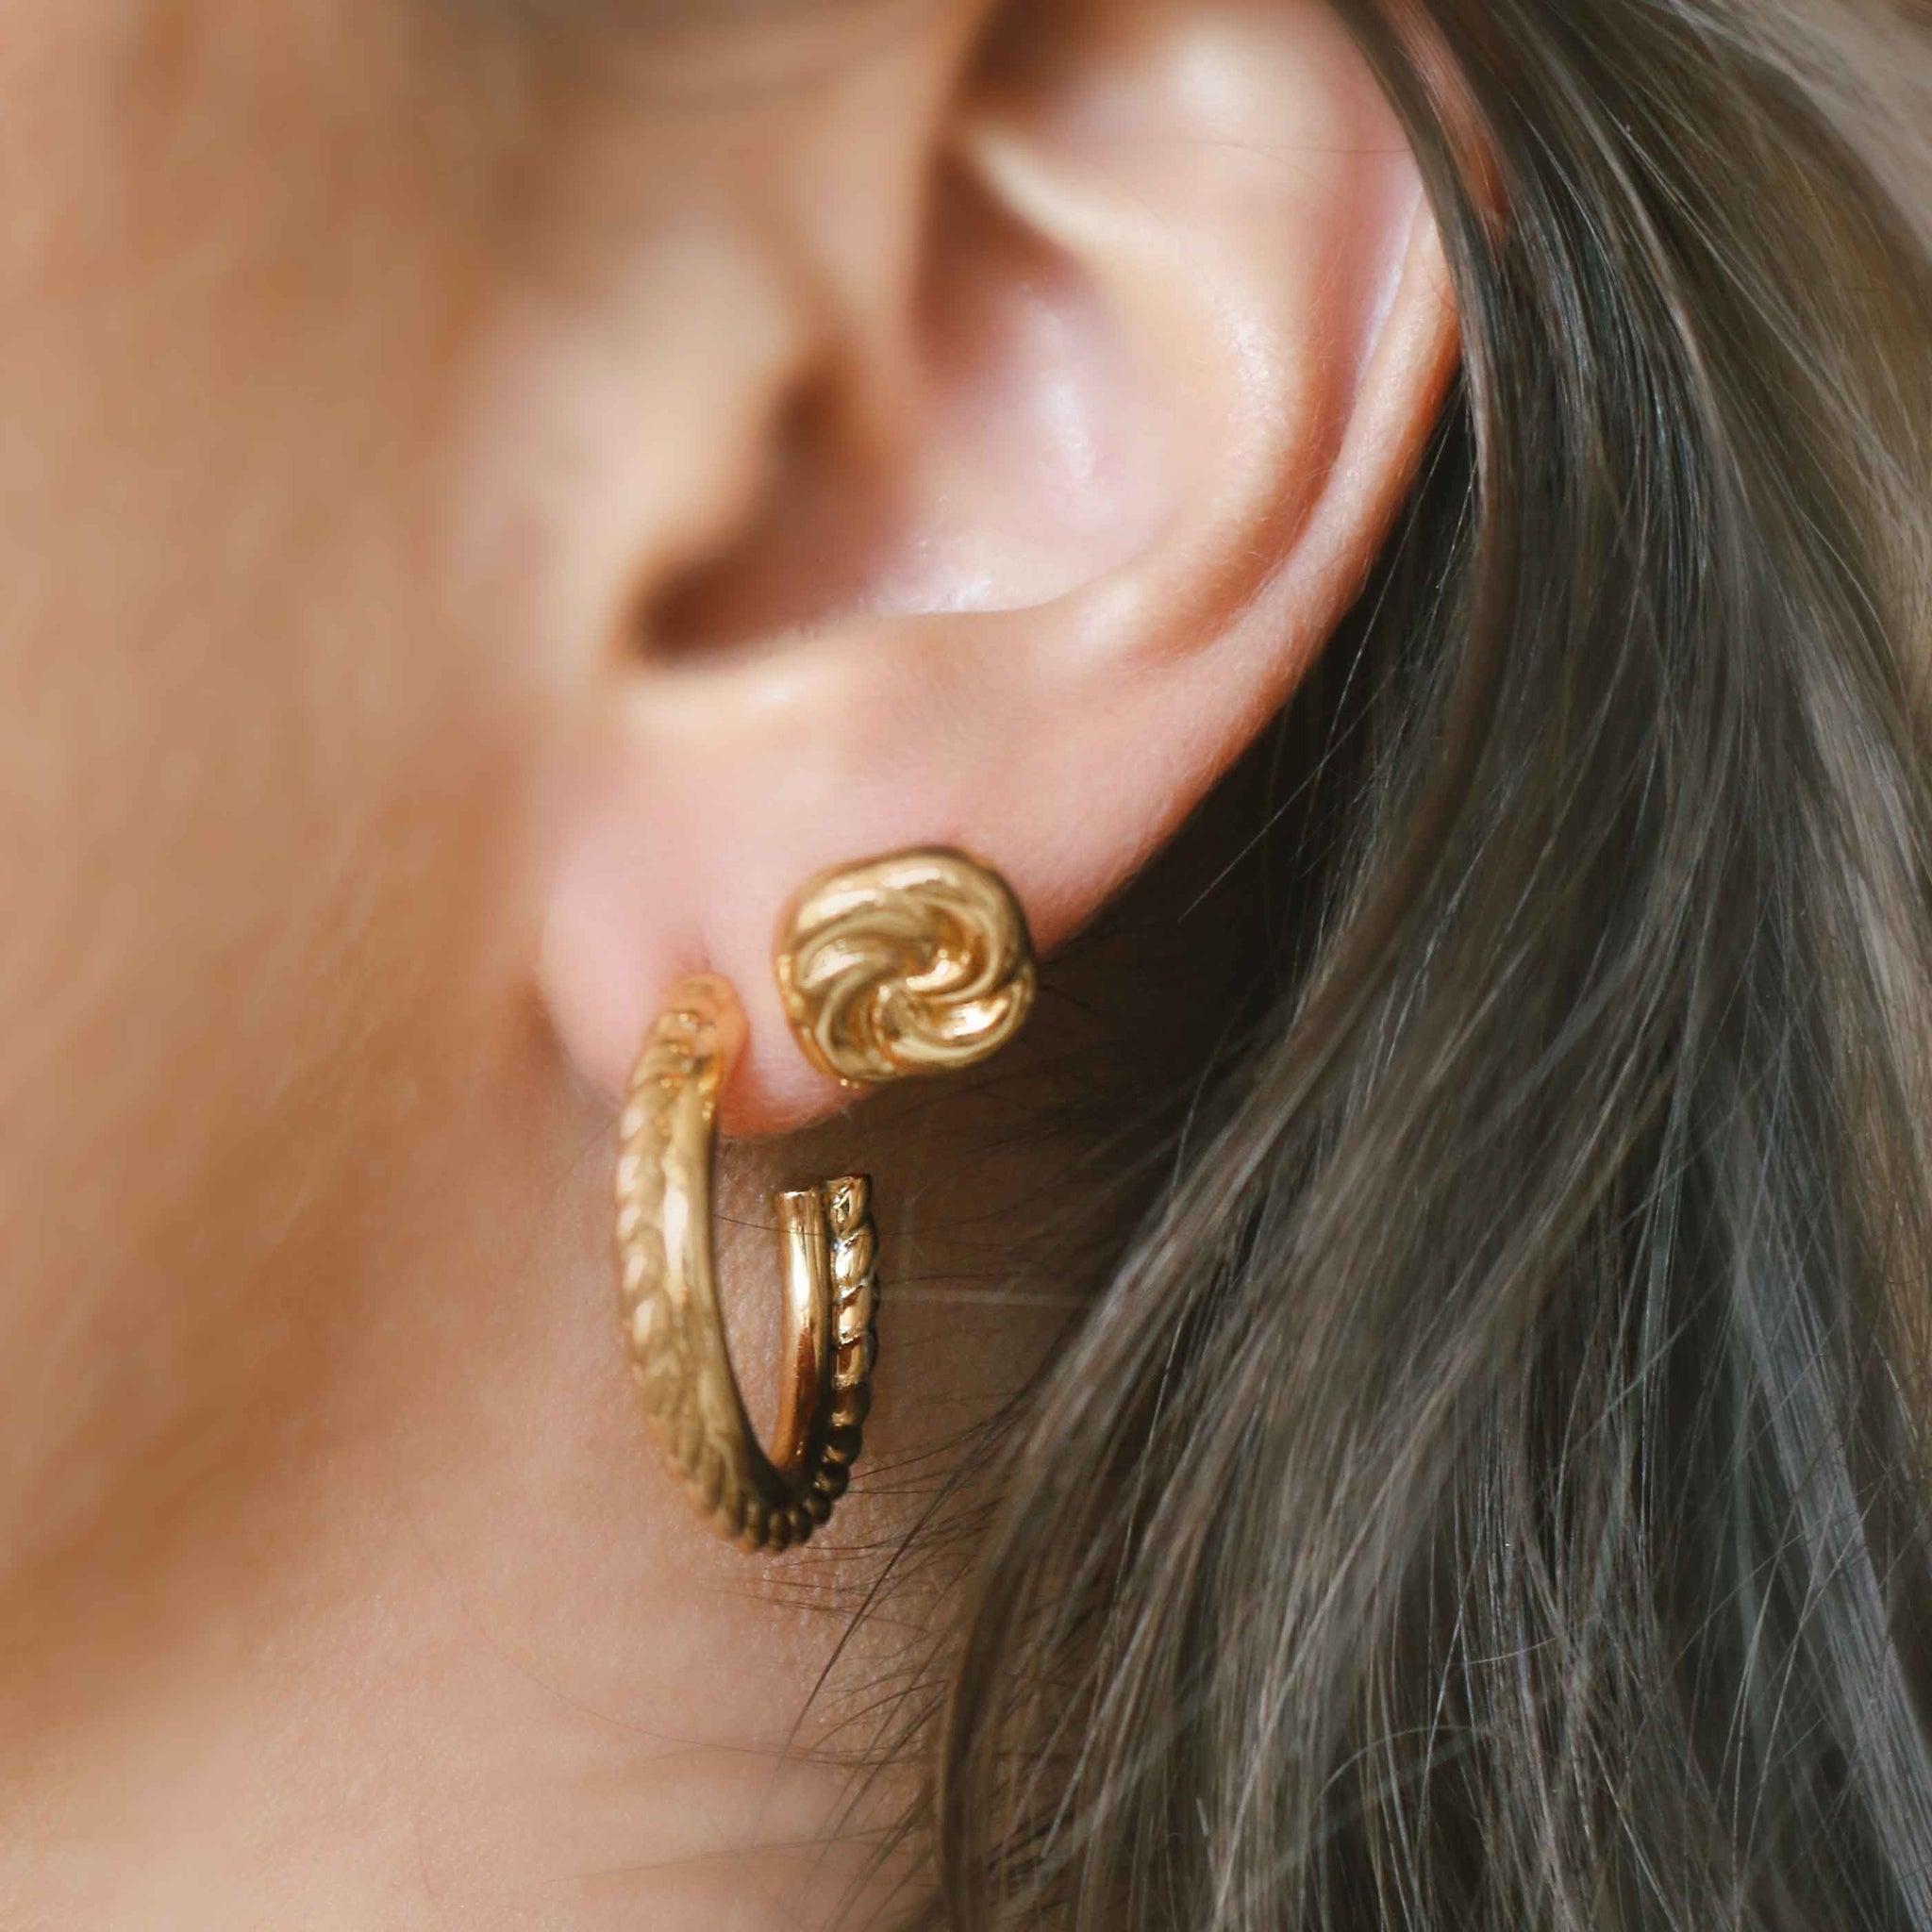 Knot Stud Earrings in Gold worn with gold hoops